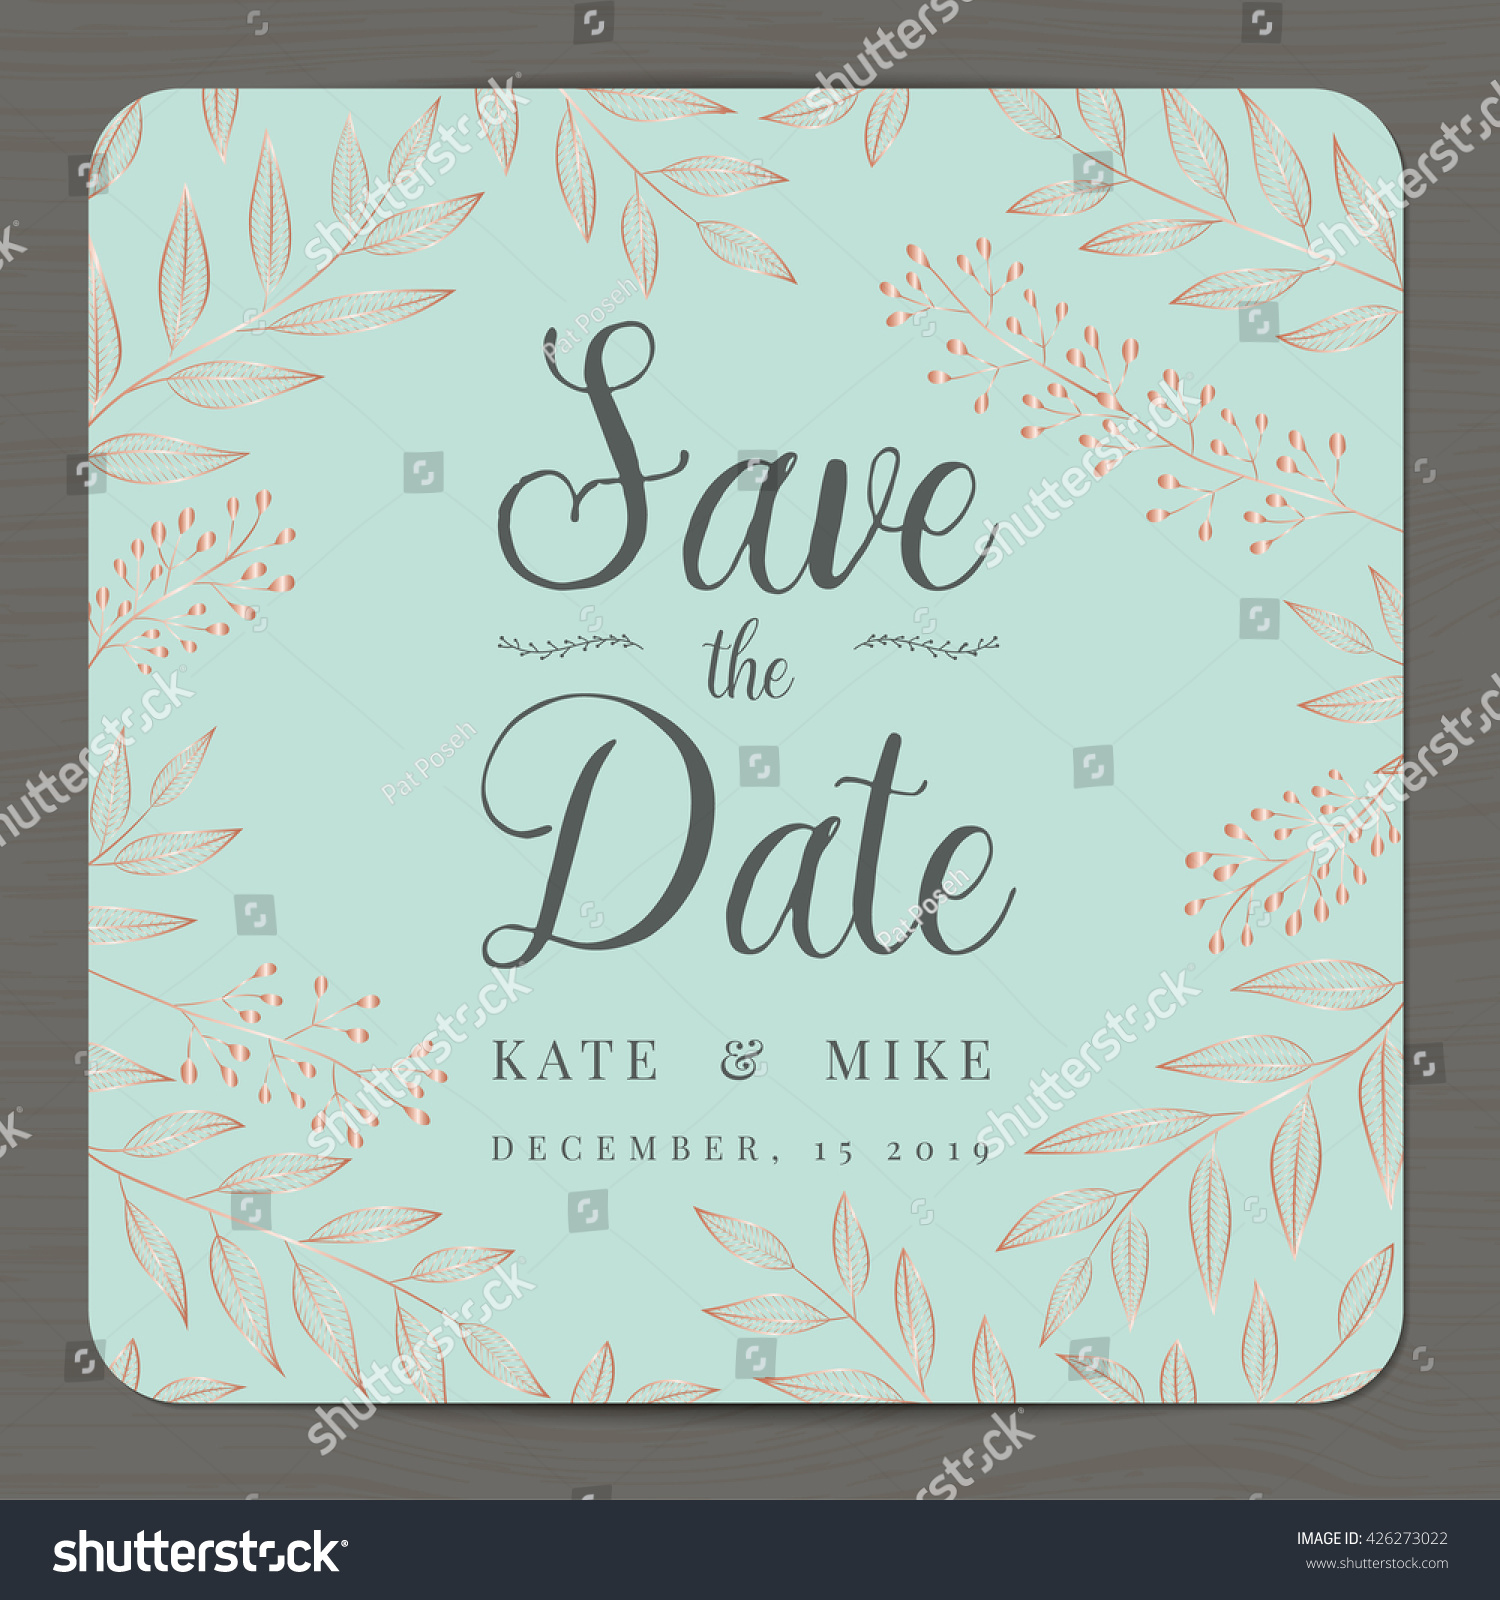 Save Date Wedding Invitation Card Template Stock Vector 426273022 ...